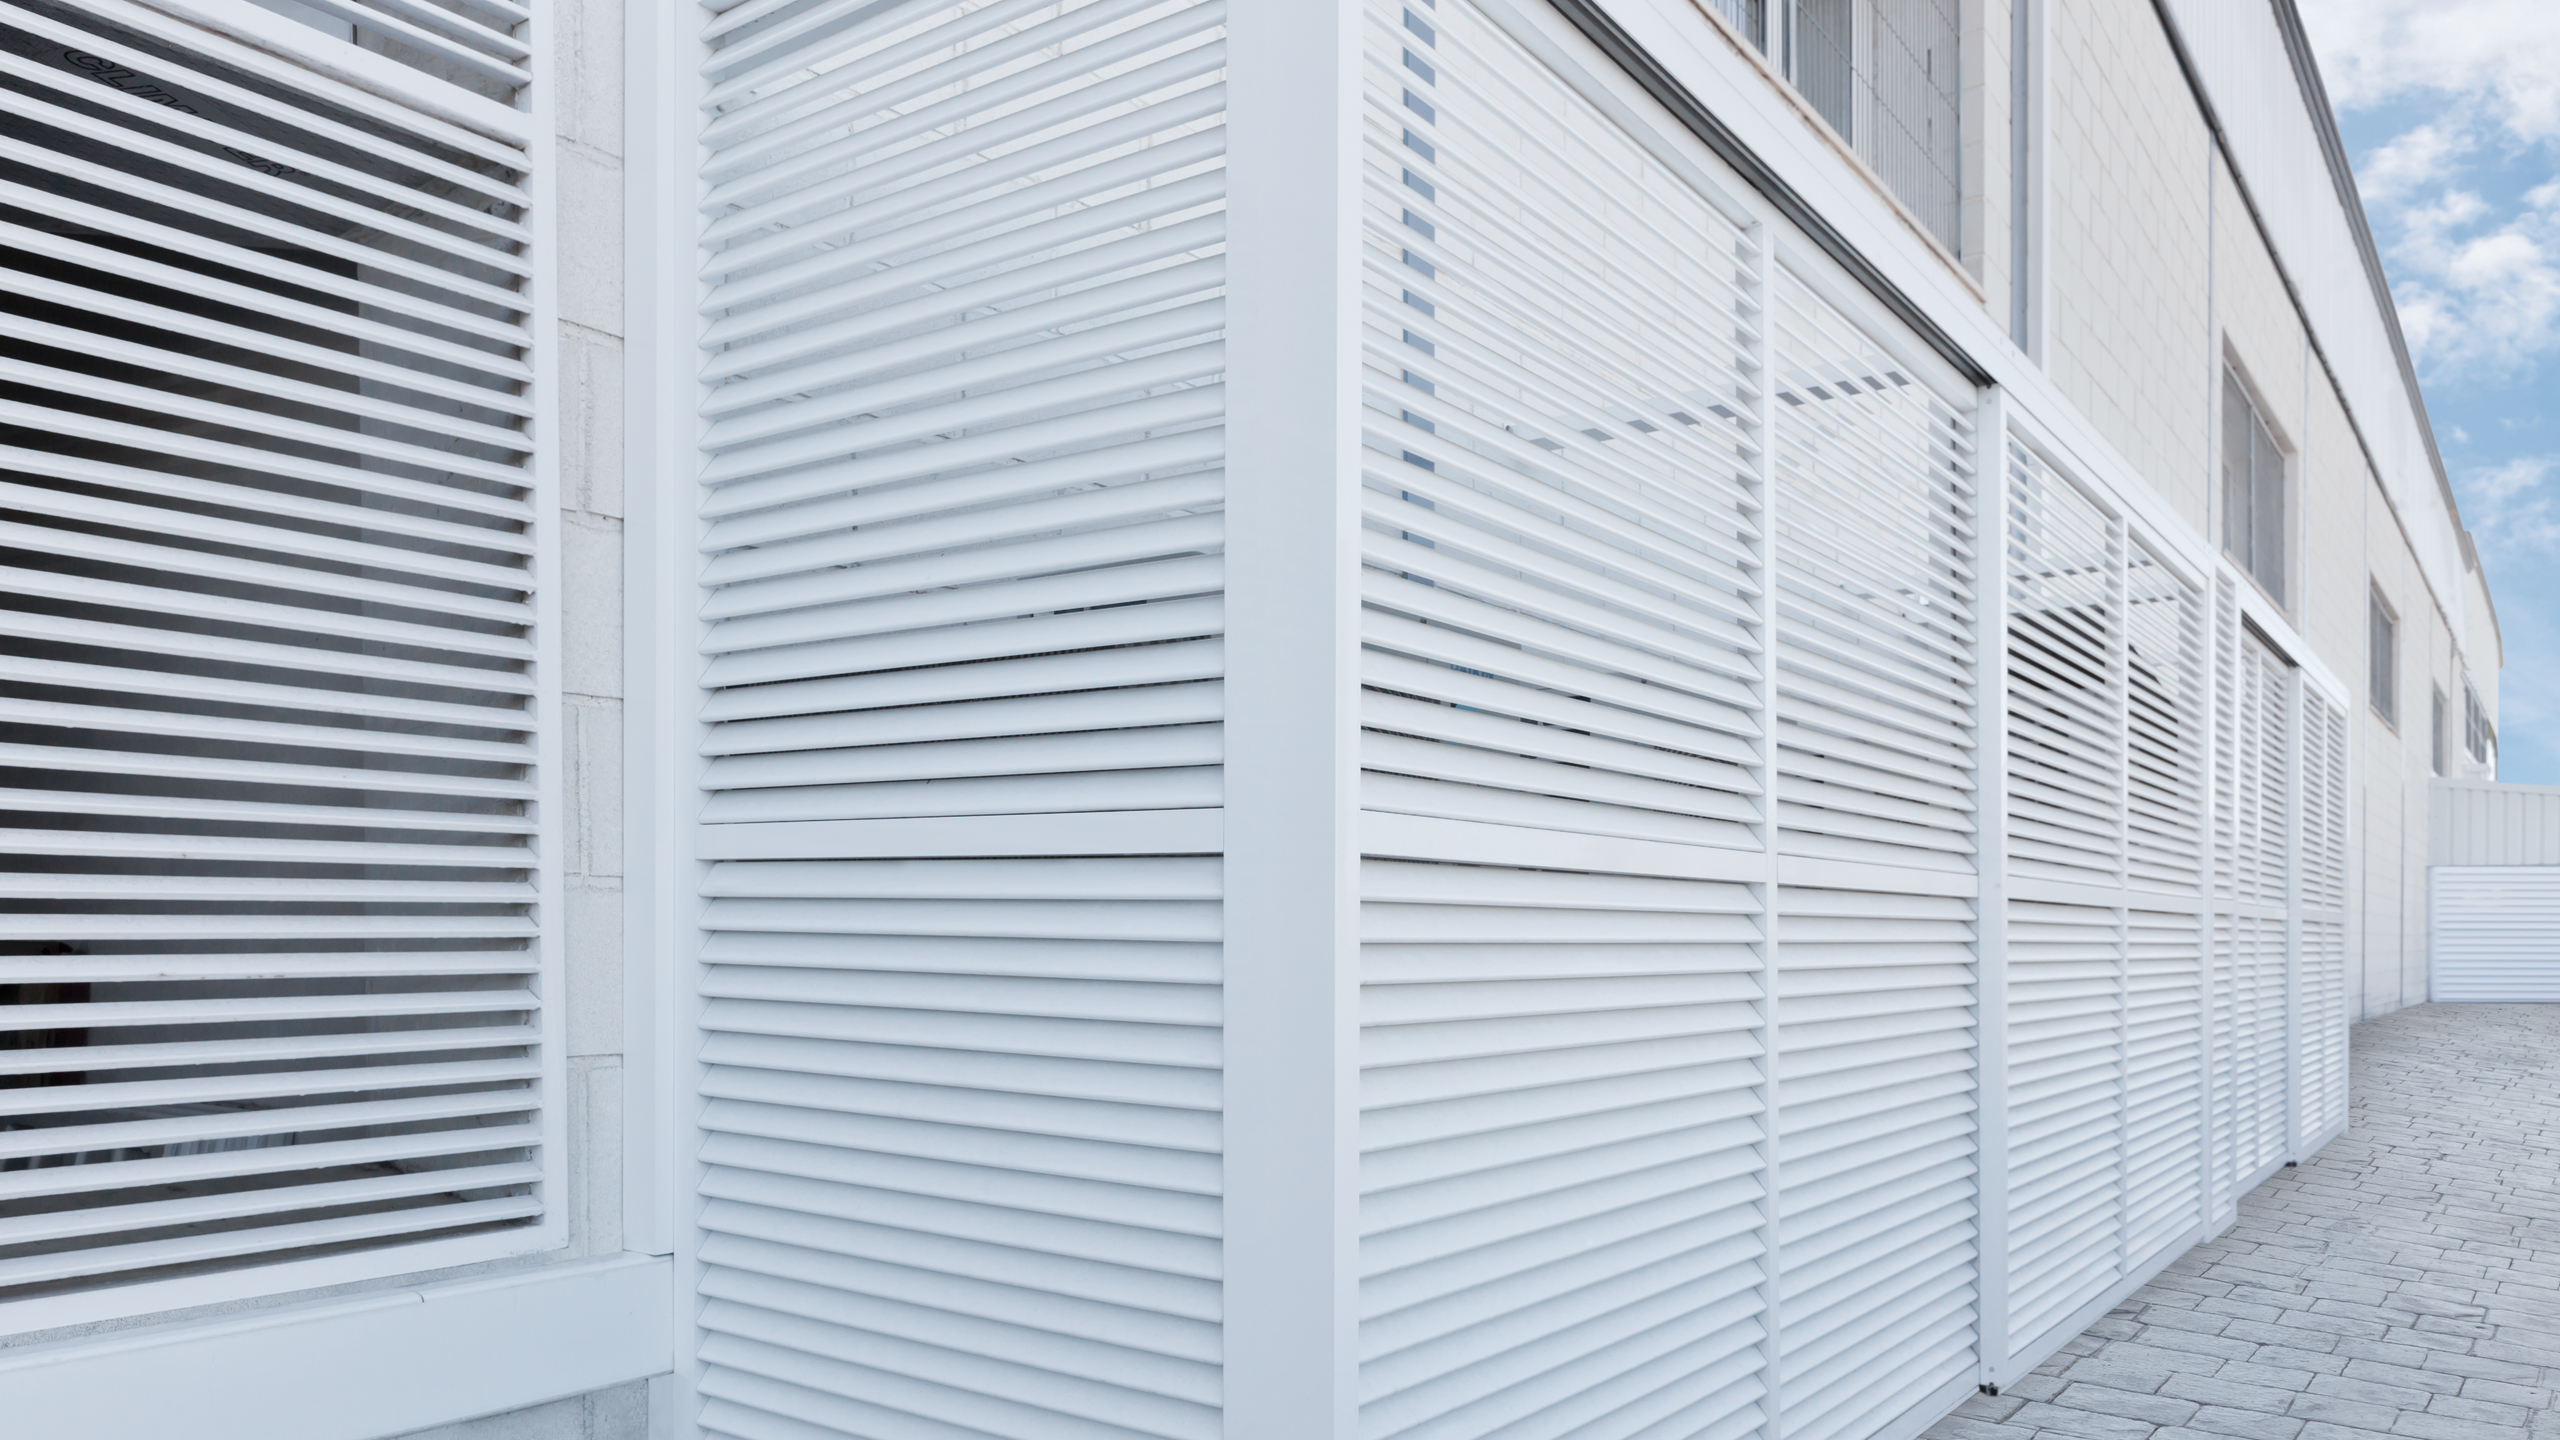 D-5 Louvers installed in an office building